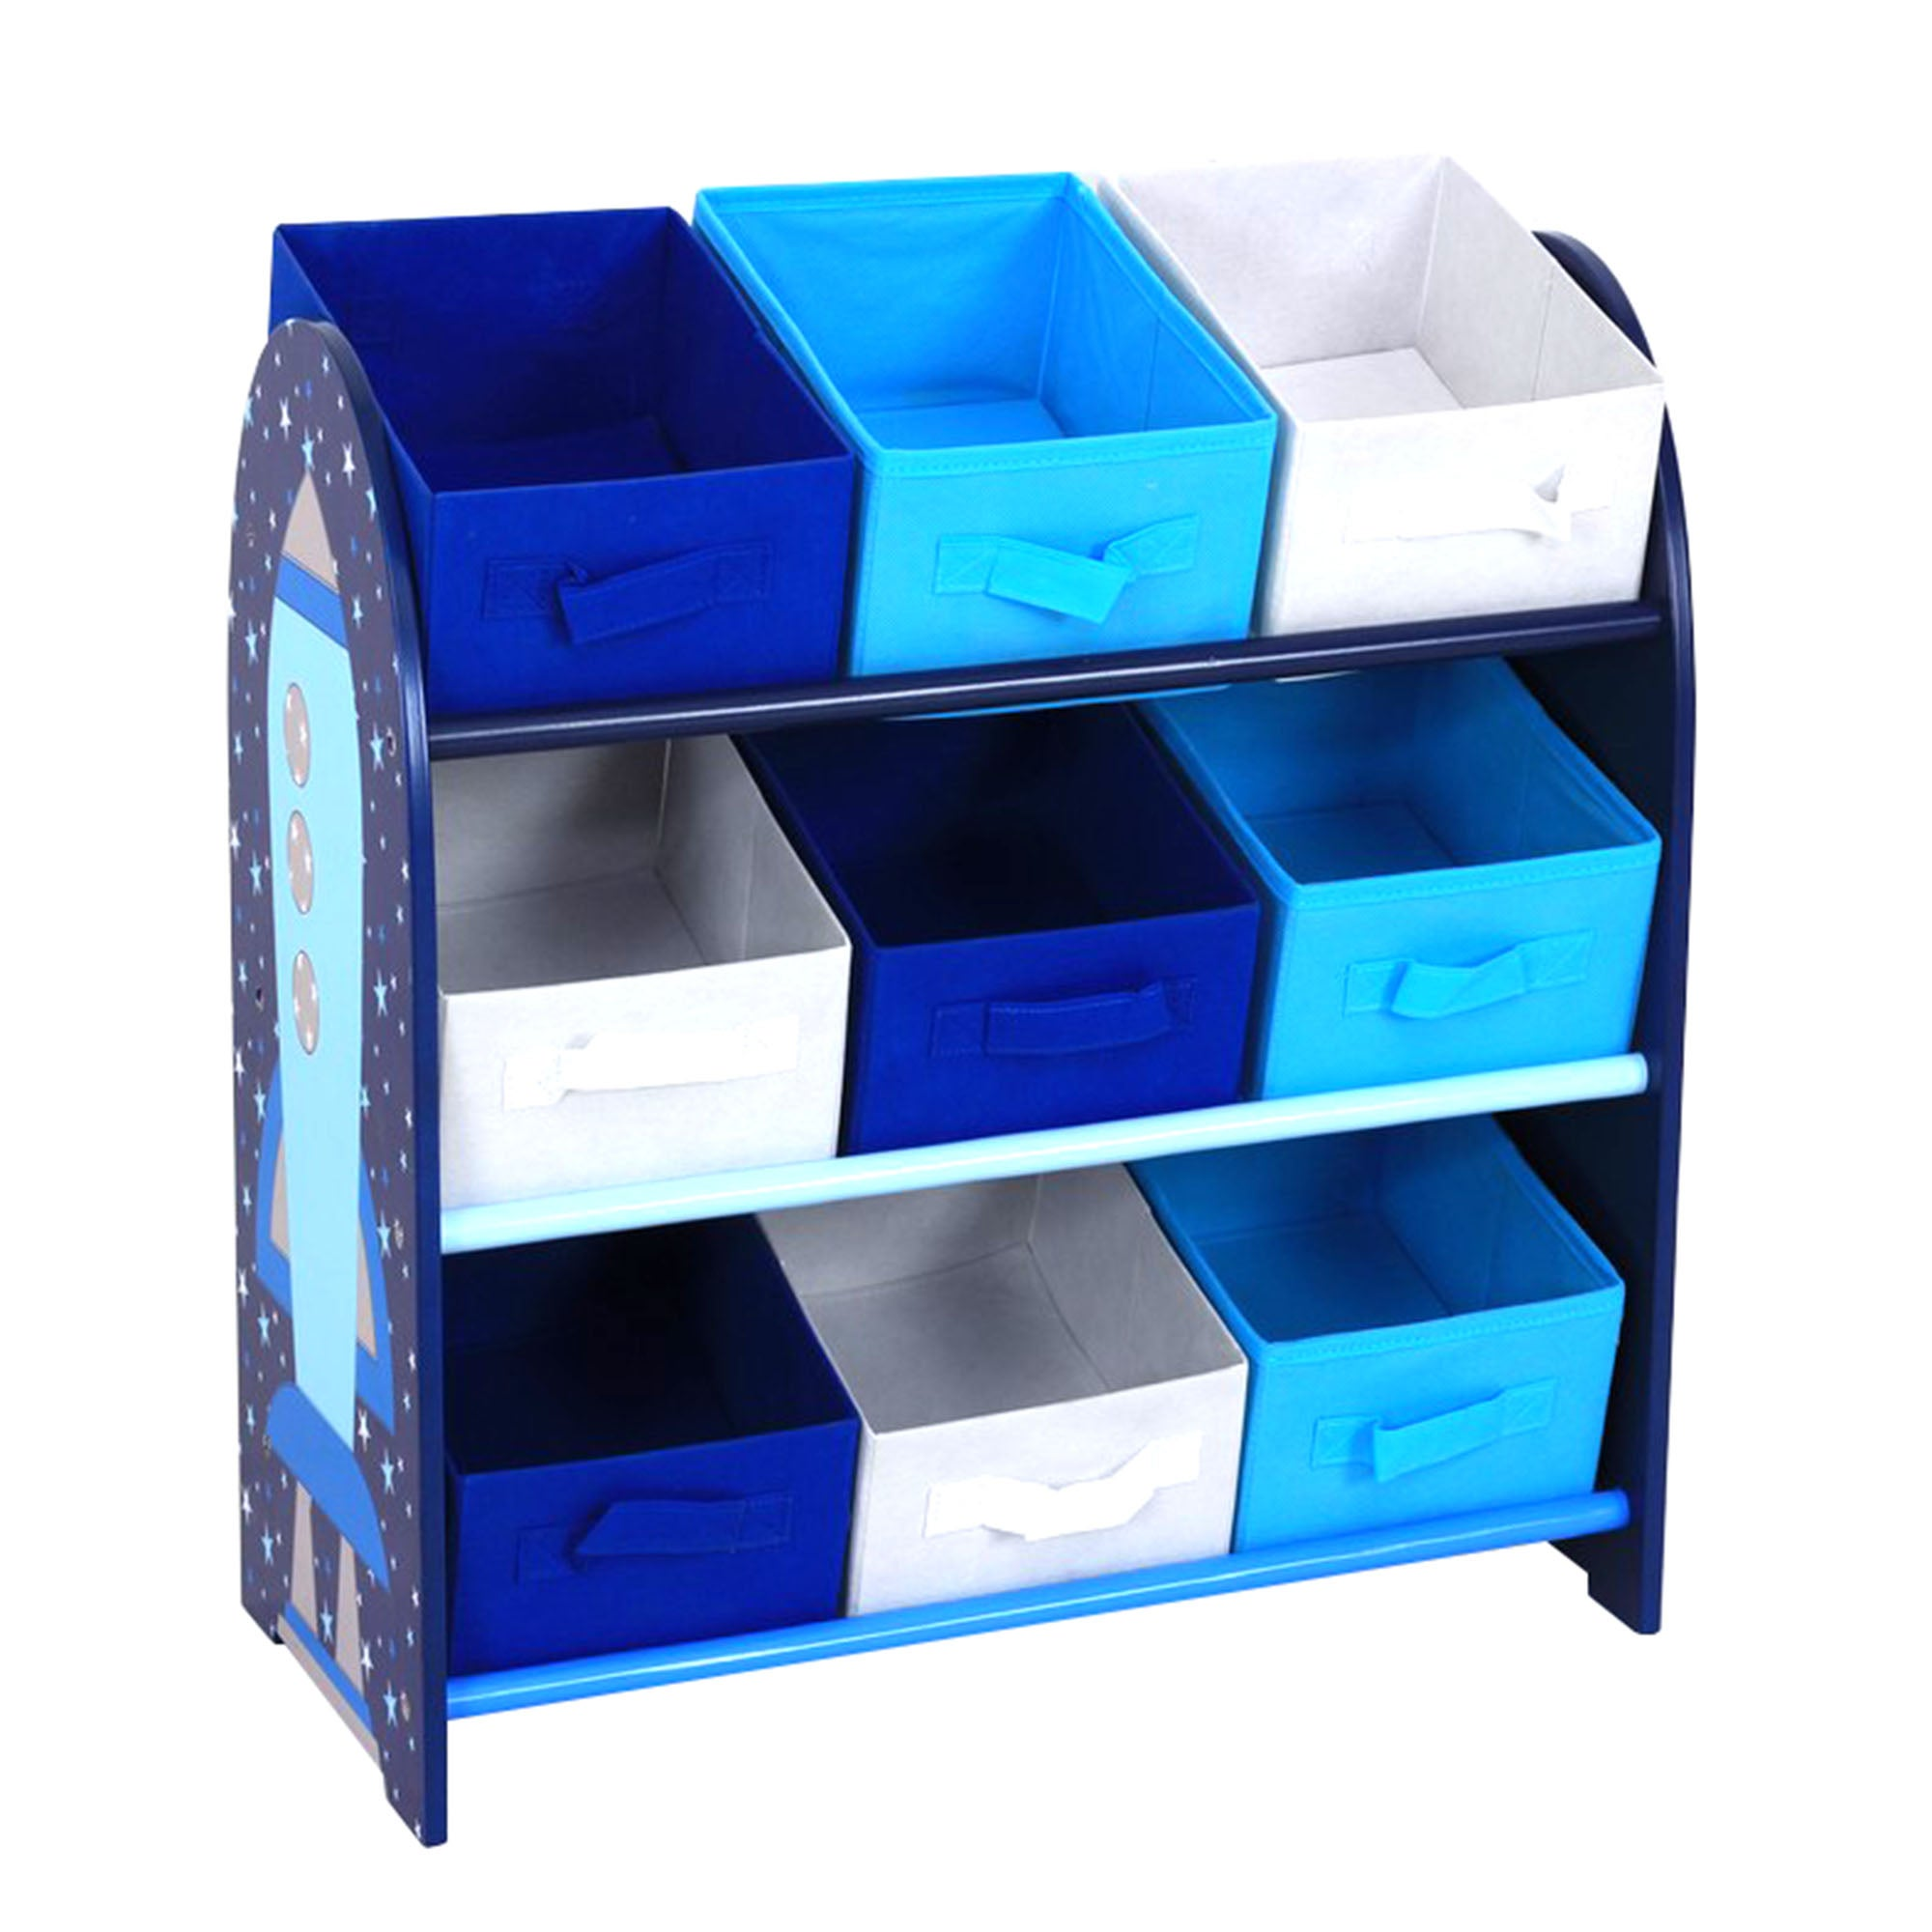 Kids storage unit shop for cheap beds and save online for Space fabric dunelm